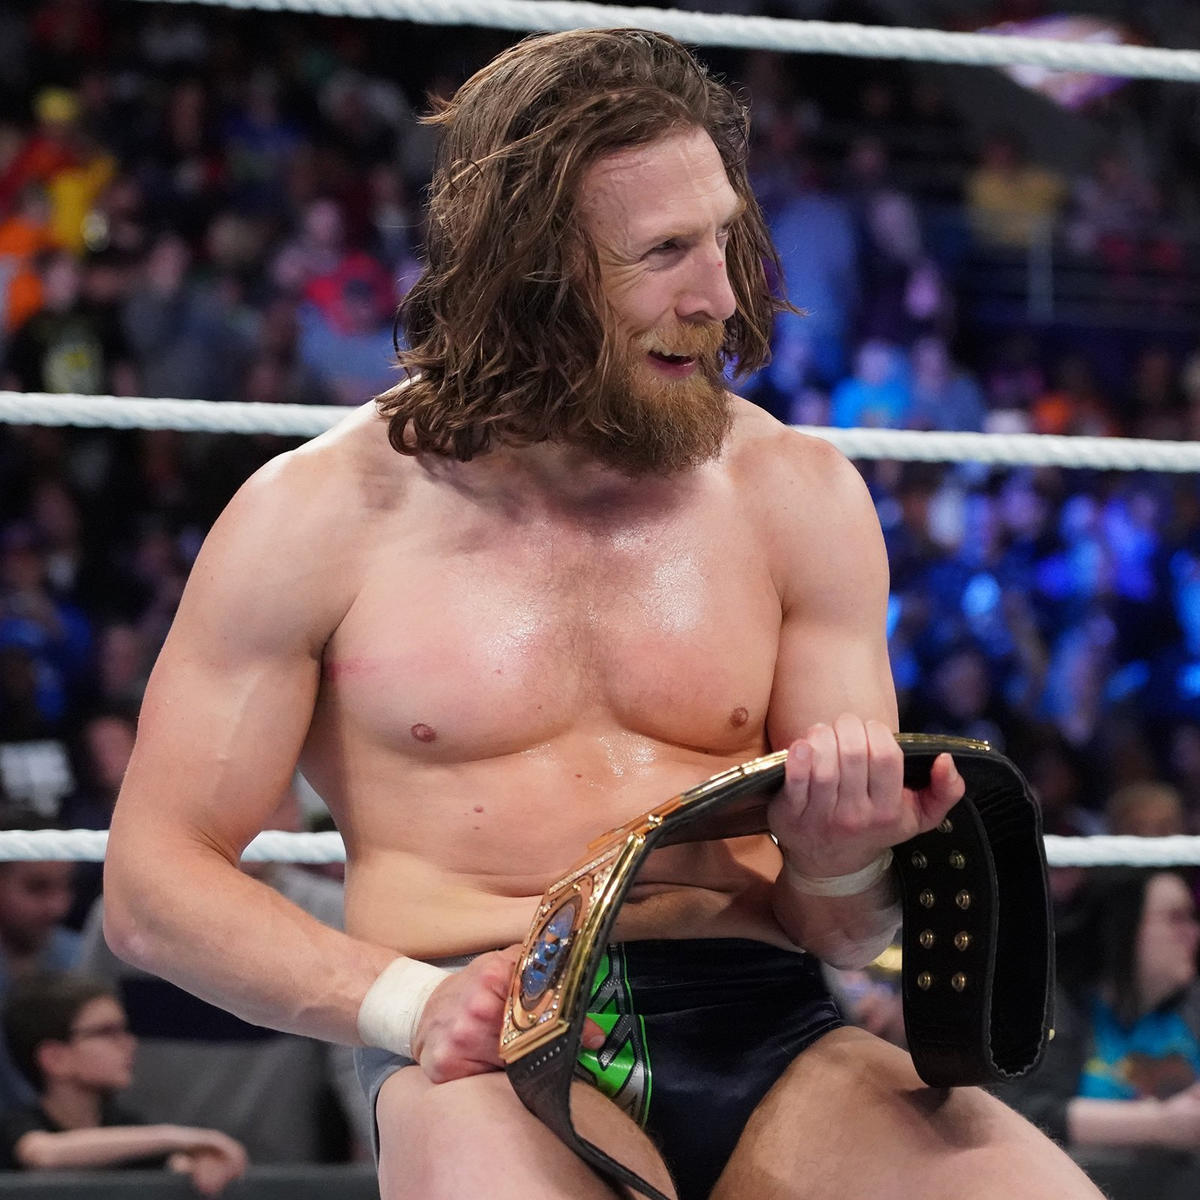 Bryan is the new WWE Champion!